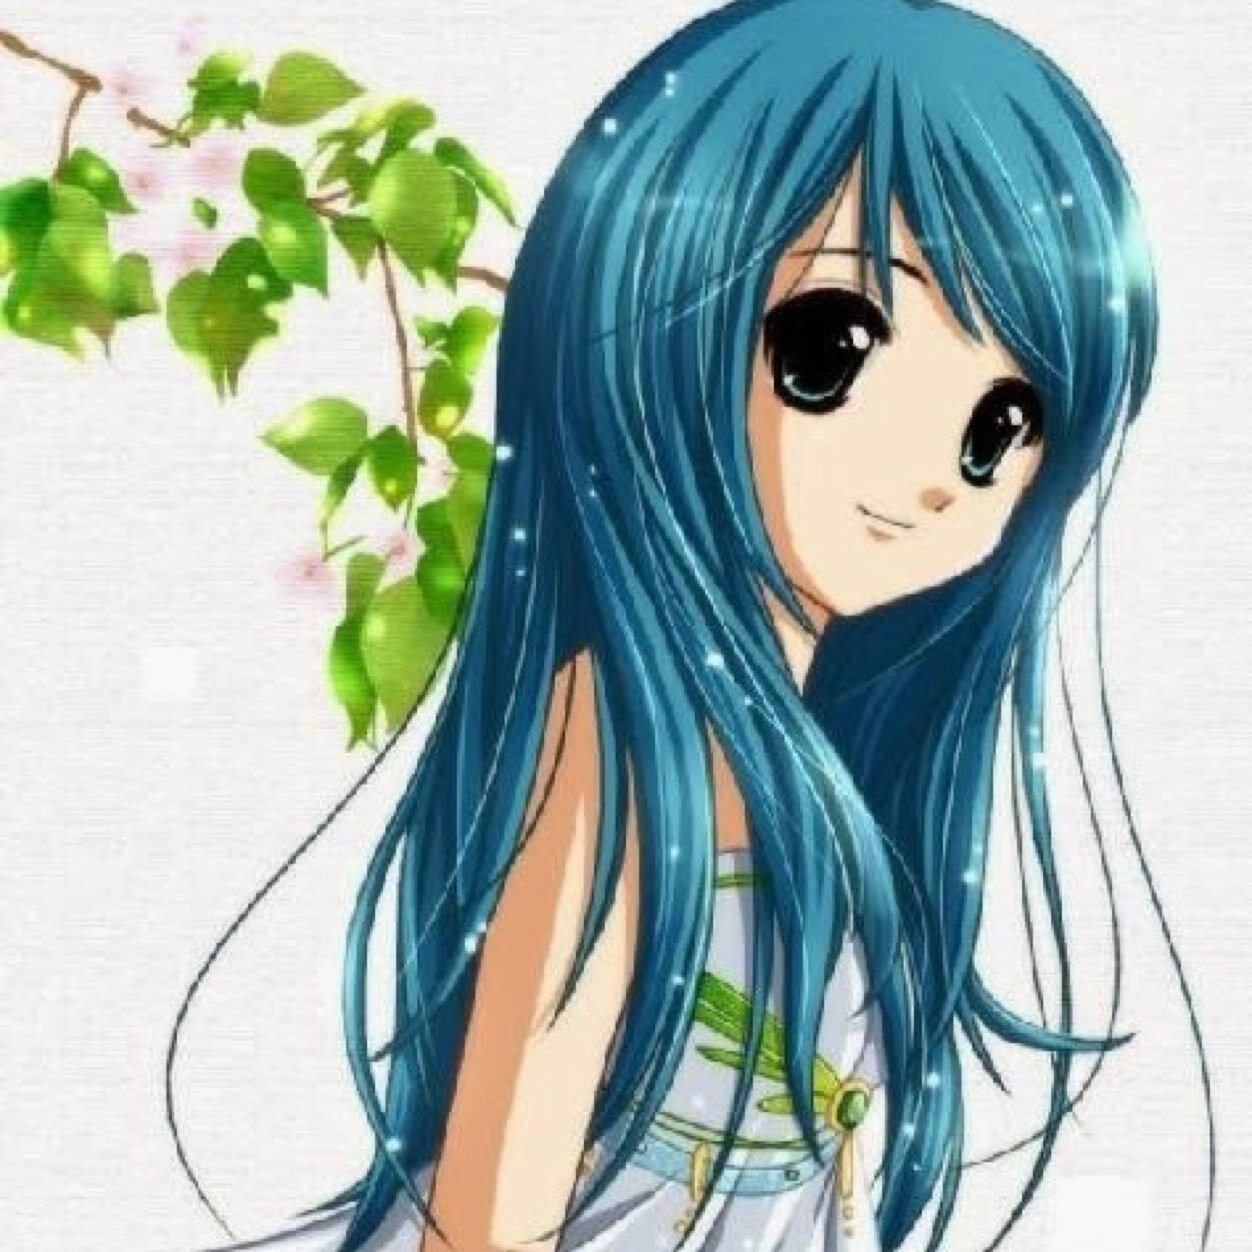 An Anime Character With Blue Hair : Cintjuuh nonstopxx twitter